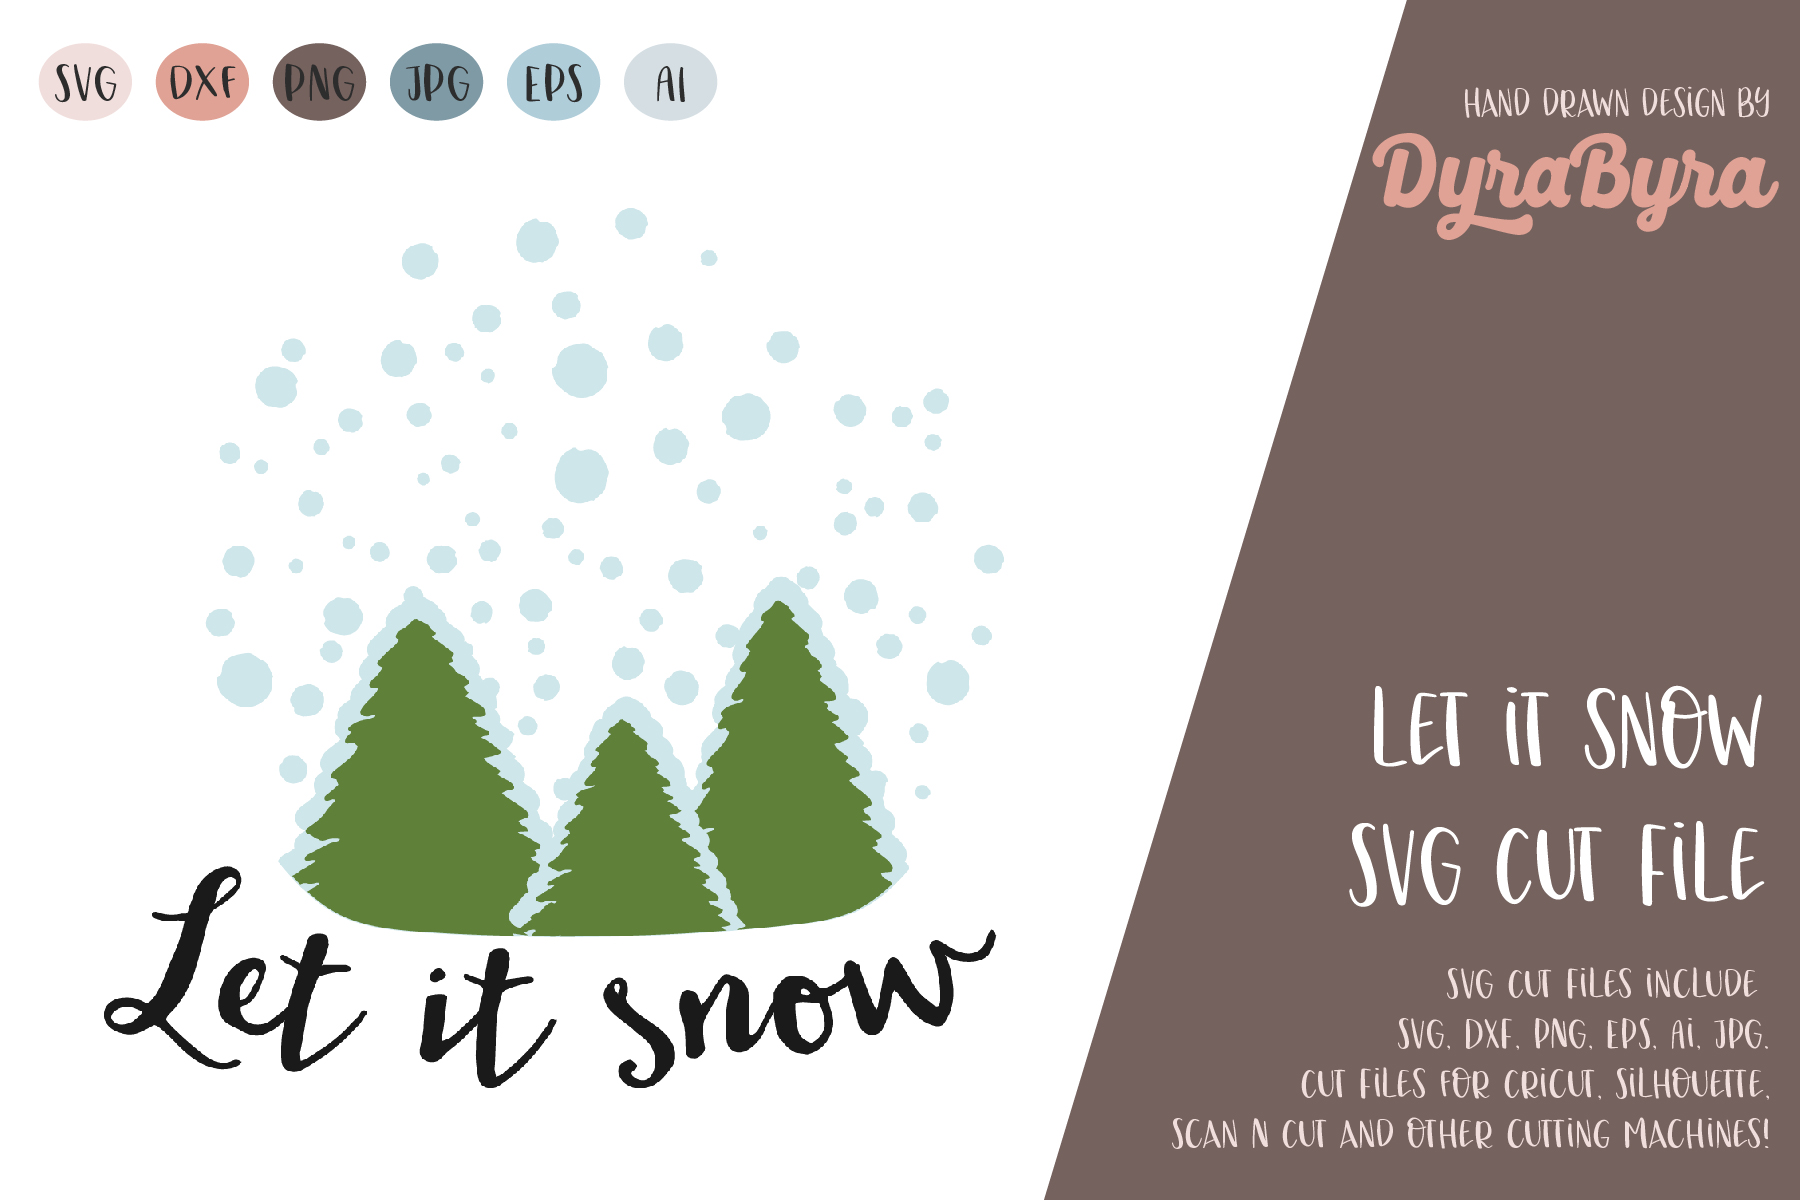 Let it snow SVG / Winter mood SVG / Christmas svg example image 2